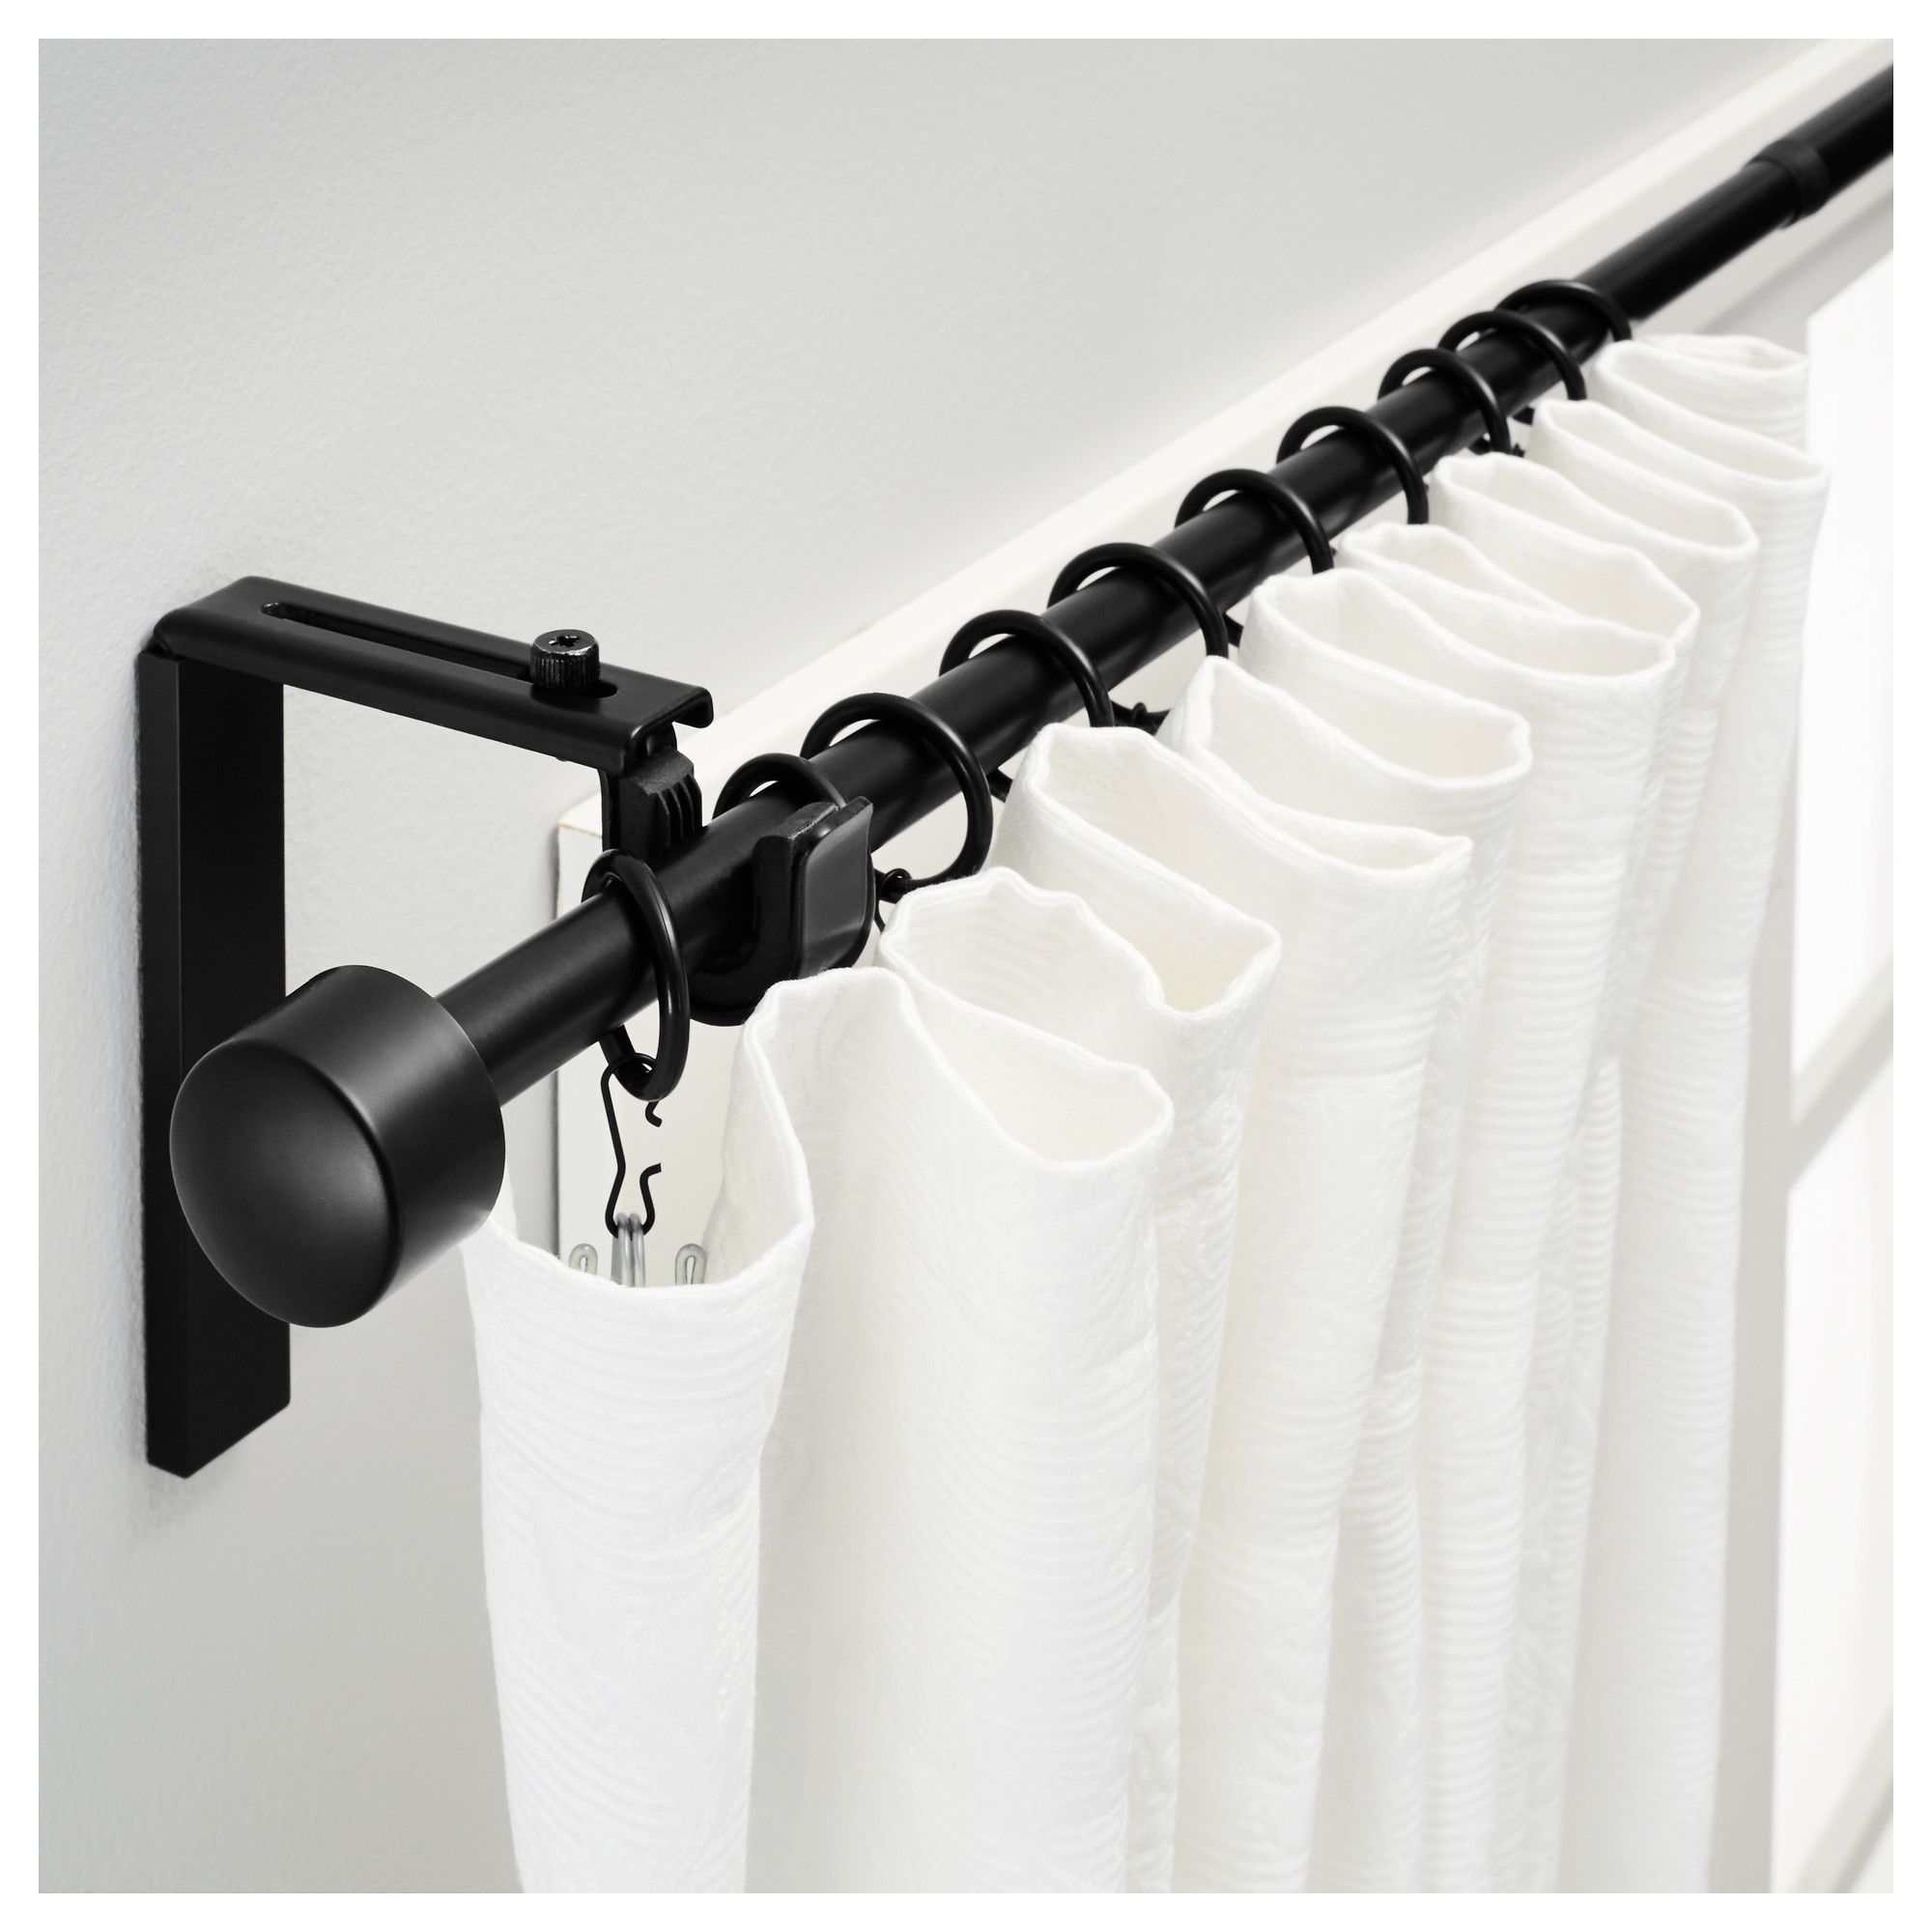 Racka Curtain Rod Combination Black Ikea In 2020 Black